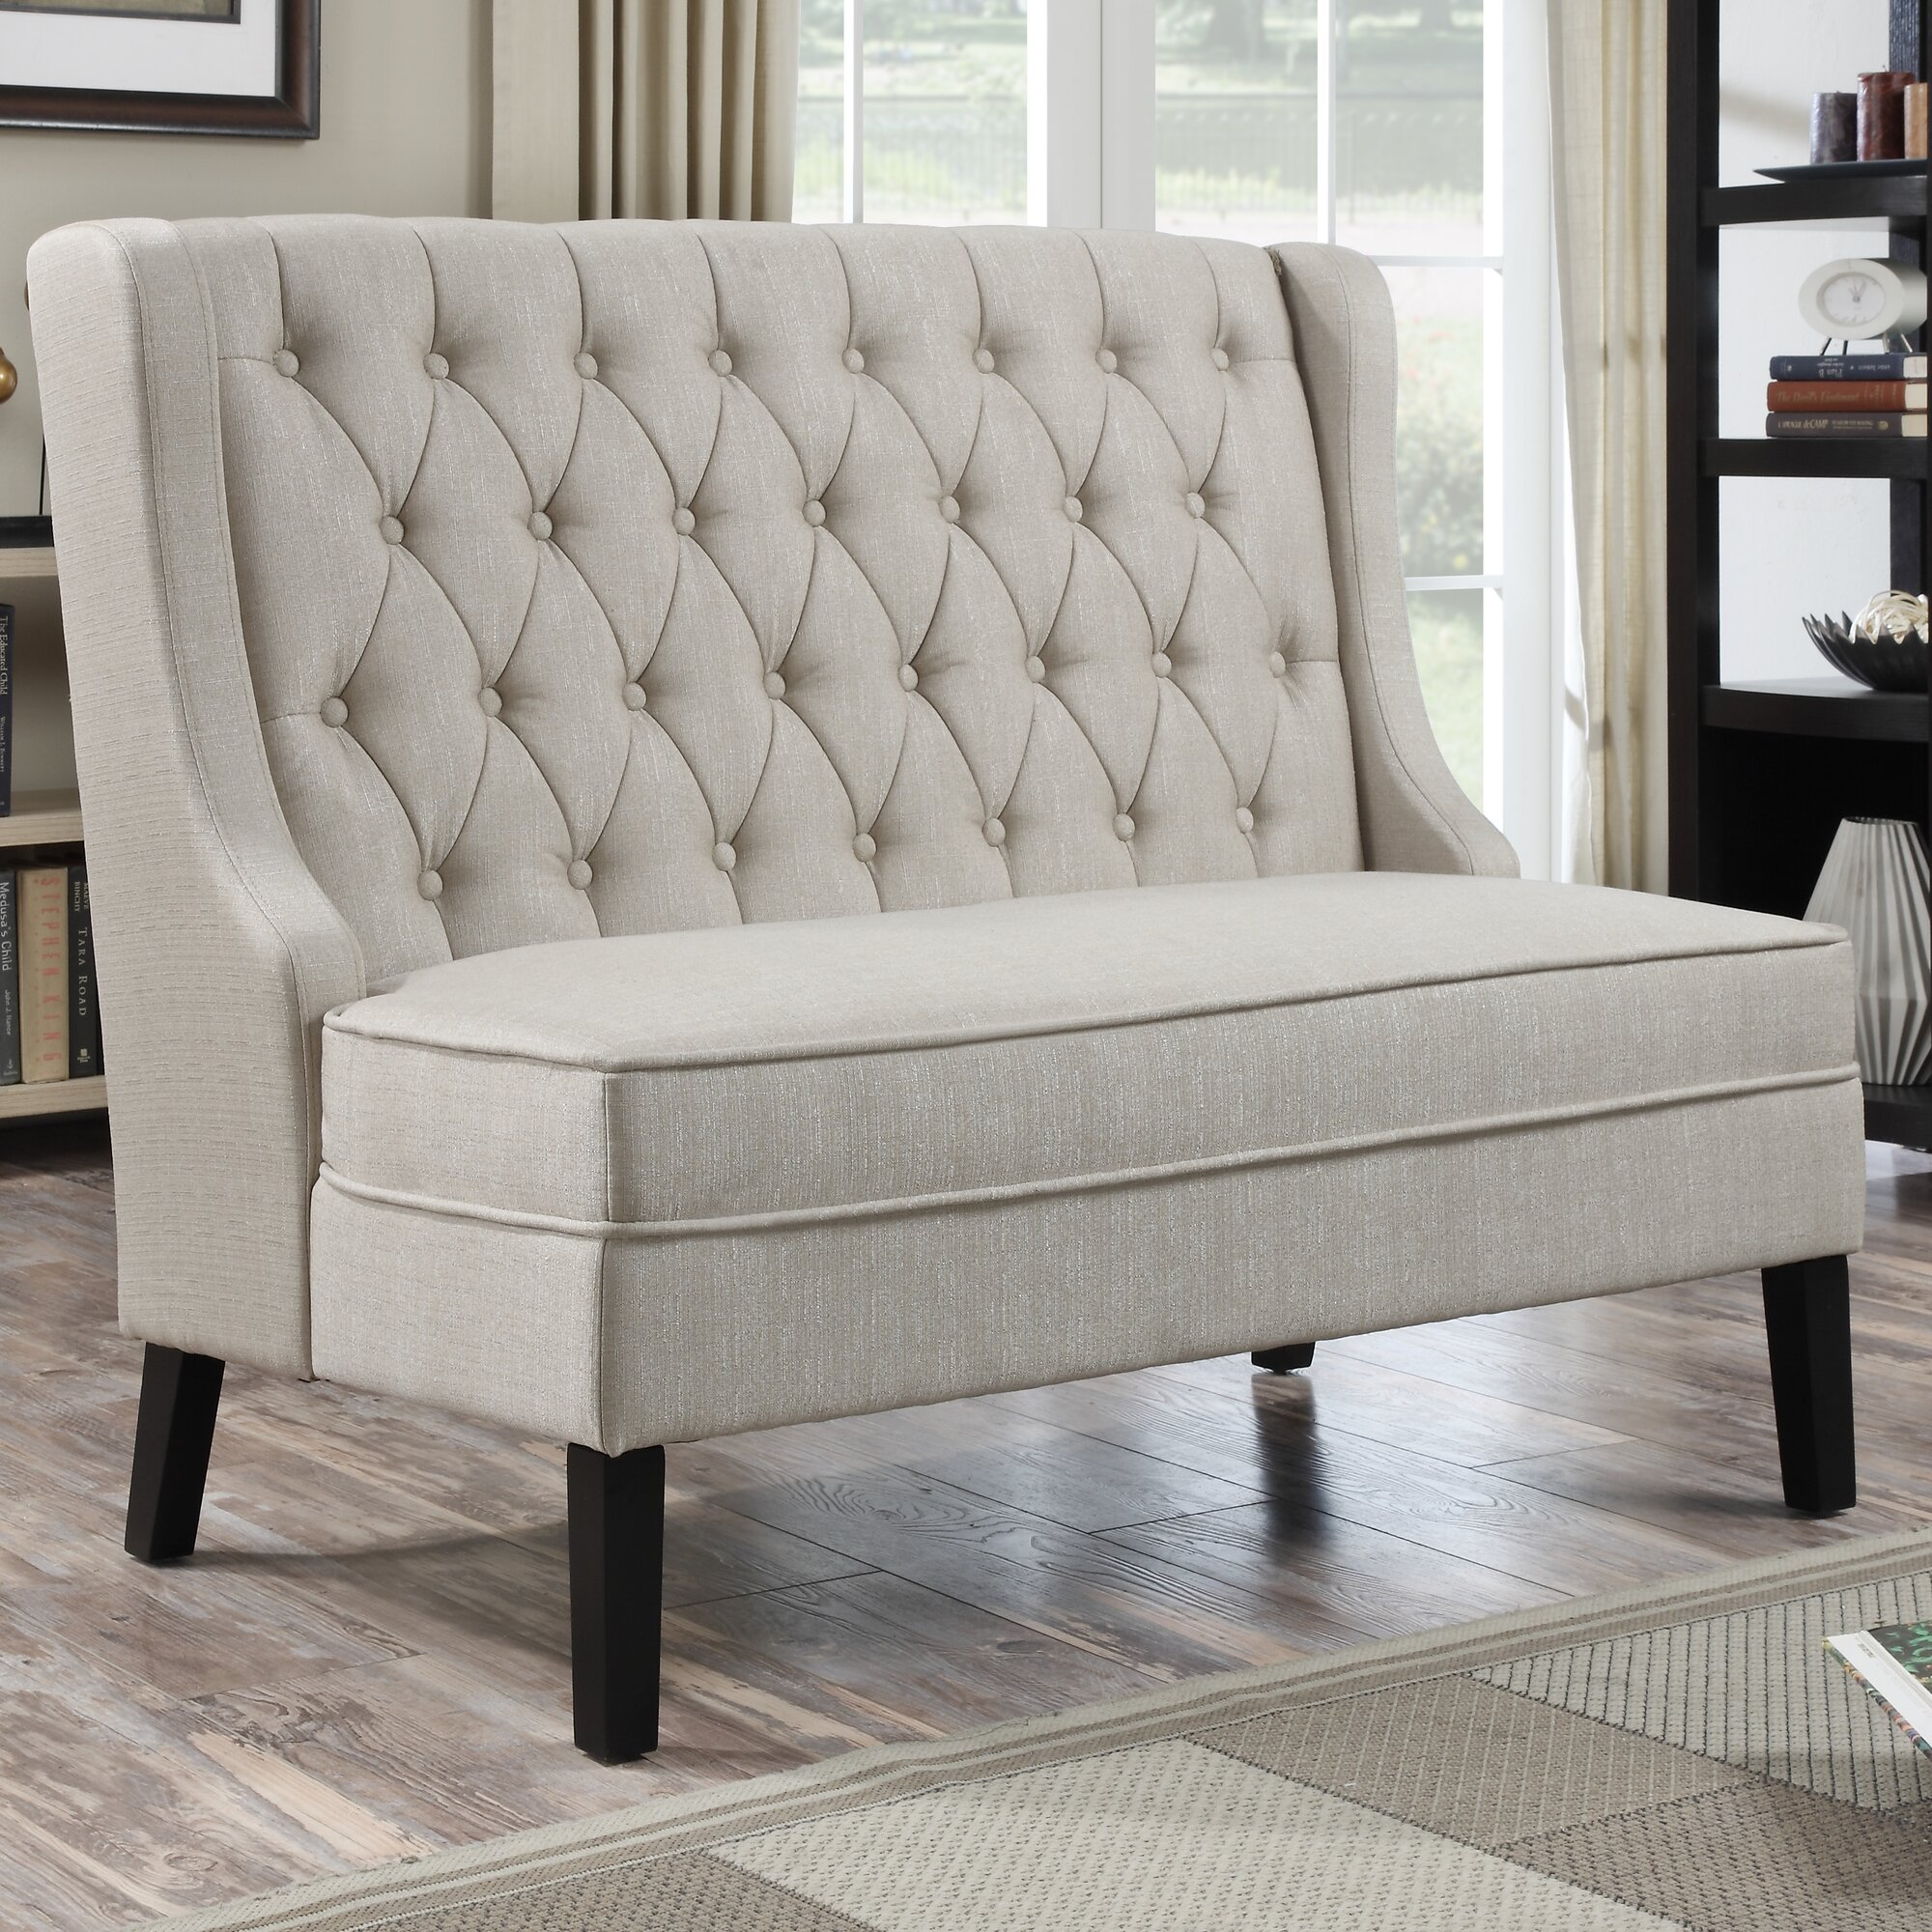 Banquette Table: PRI Upholstered Banquette In Oatmeal